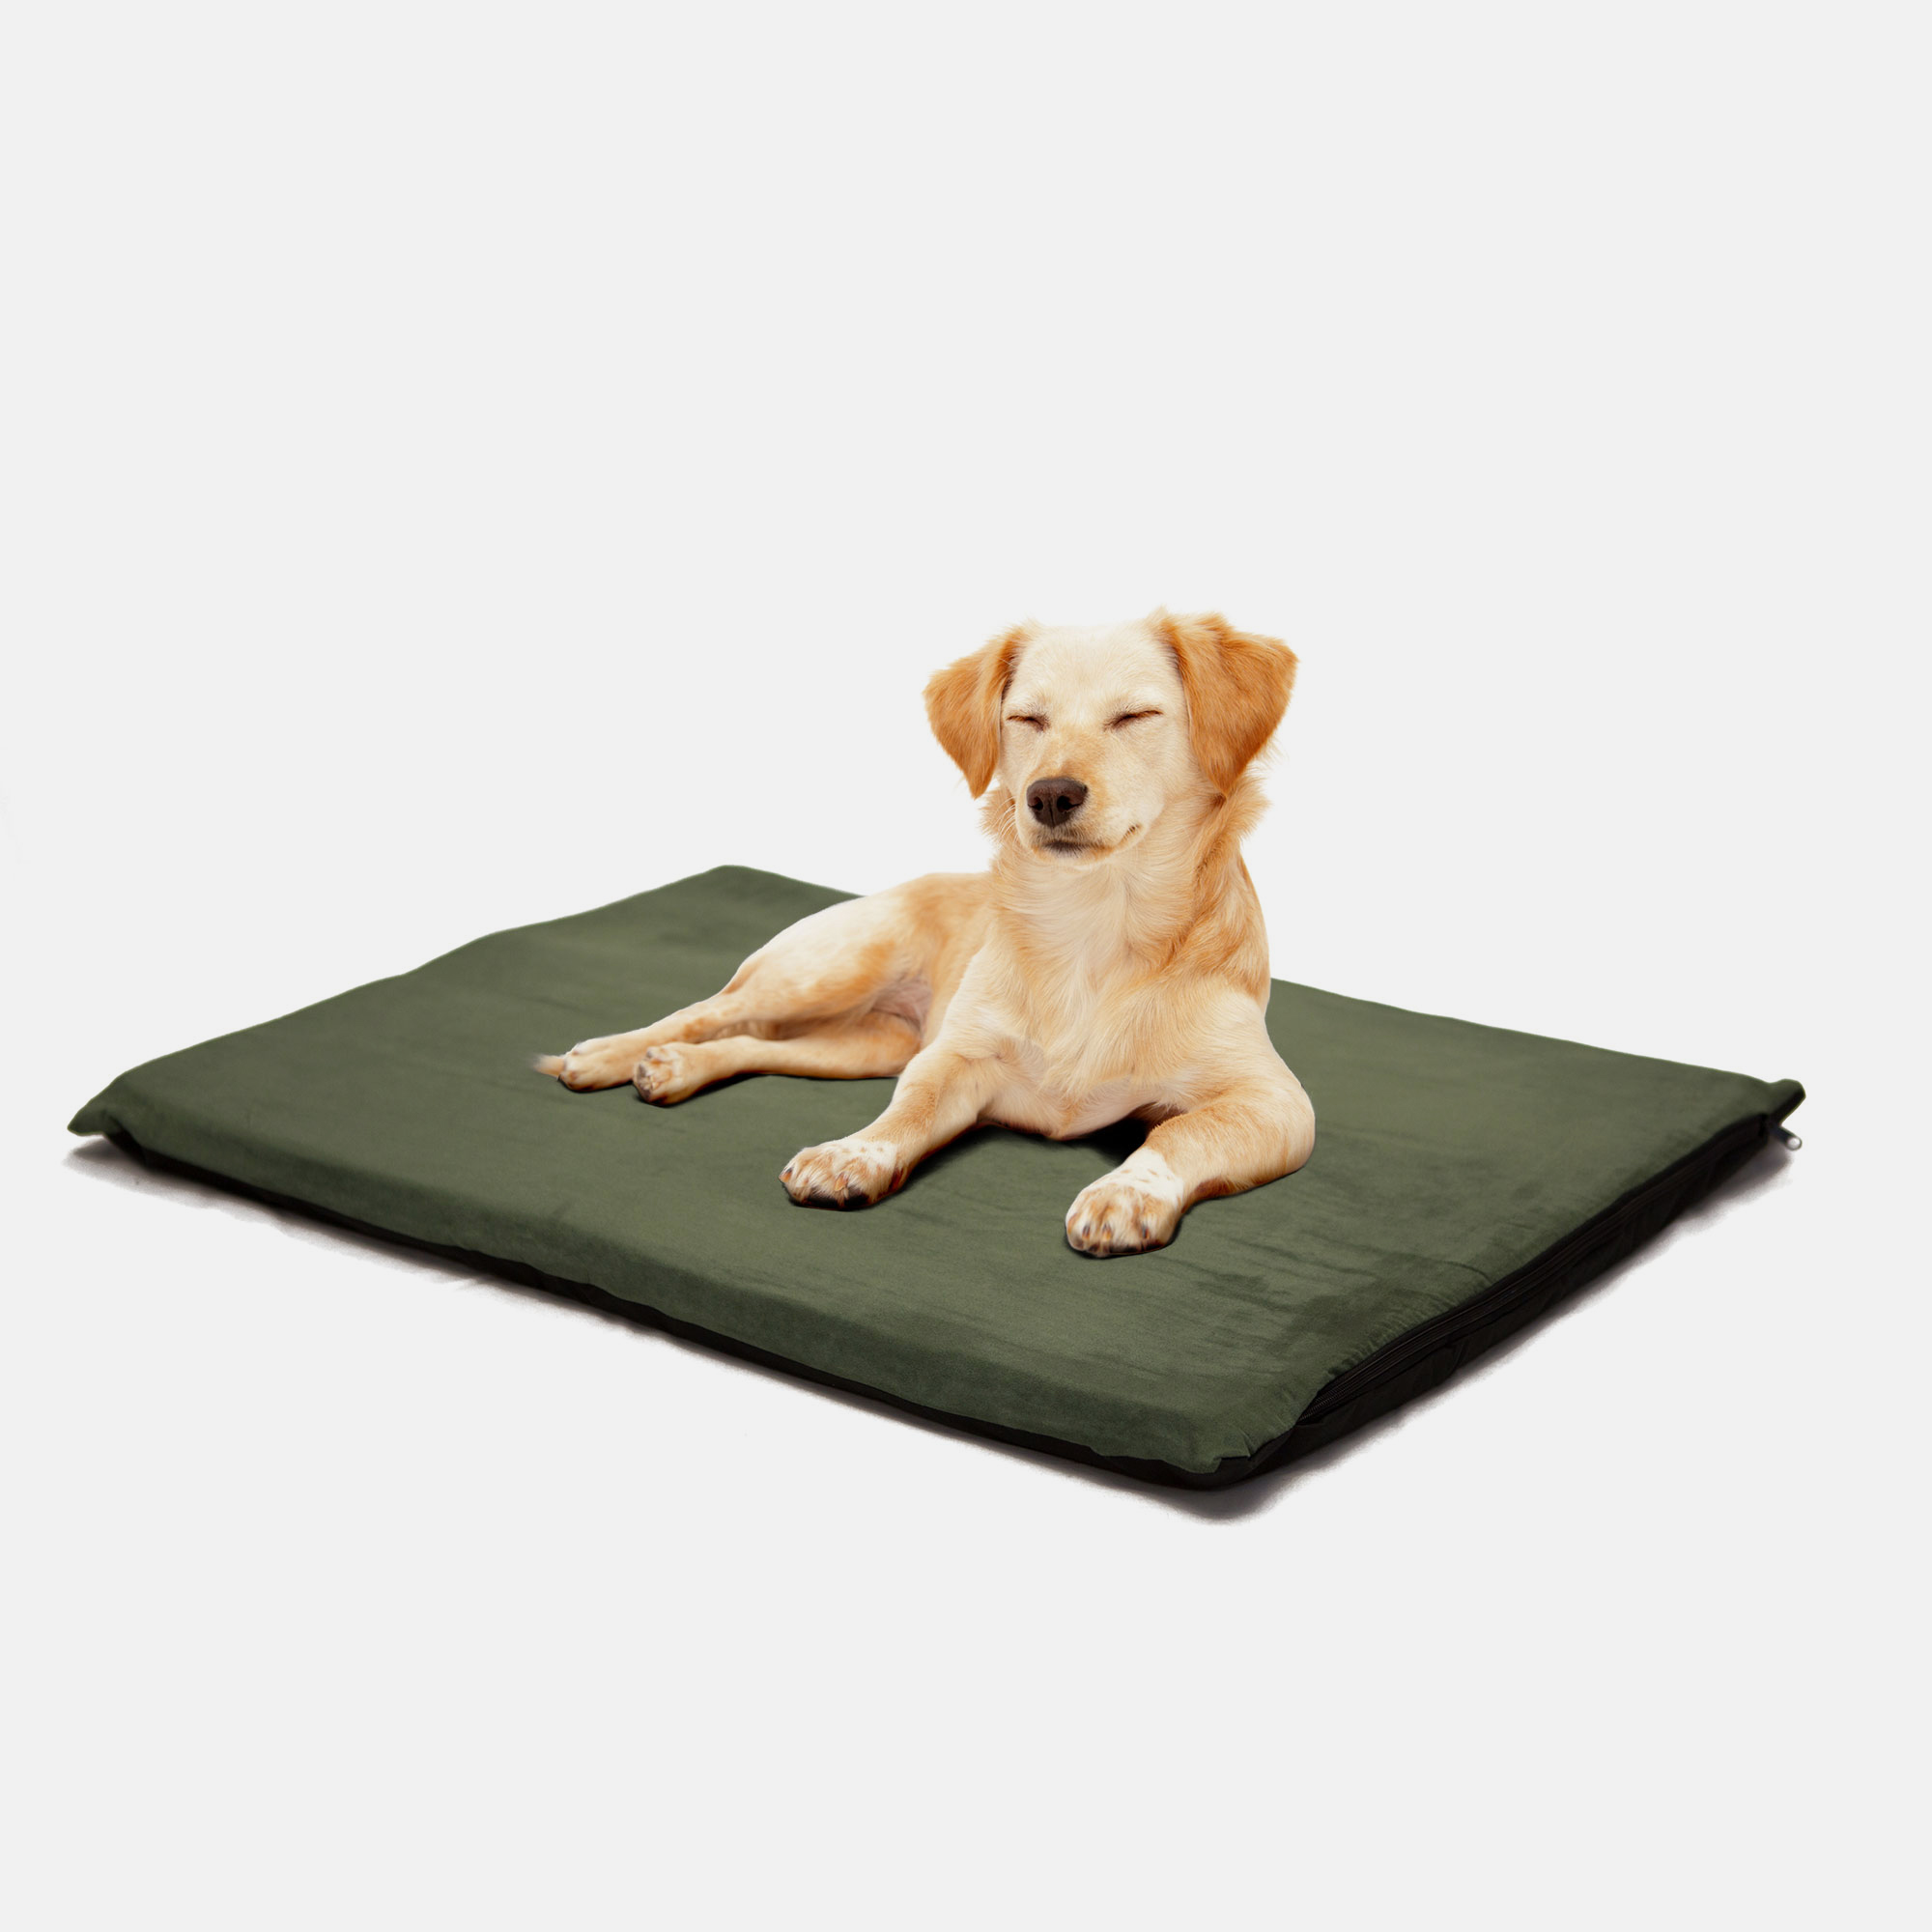 PAW 2  Orthopedic Foam Pet Bed - Suede Forest